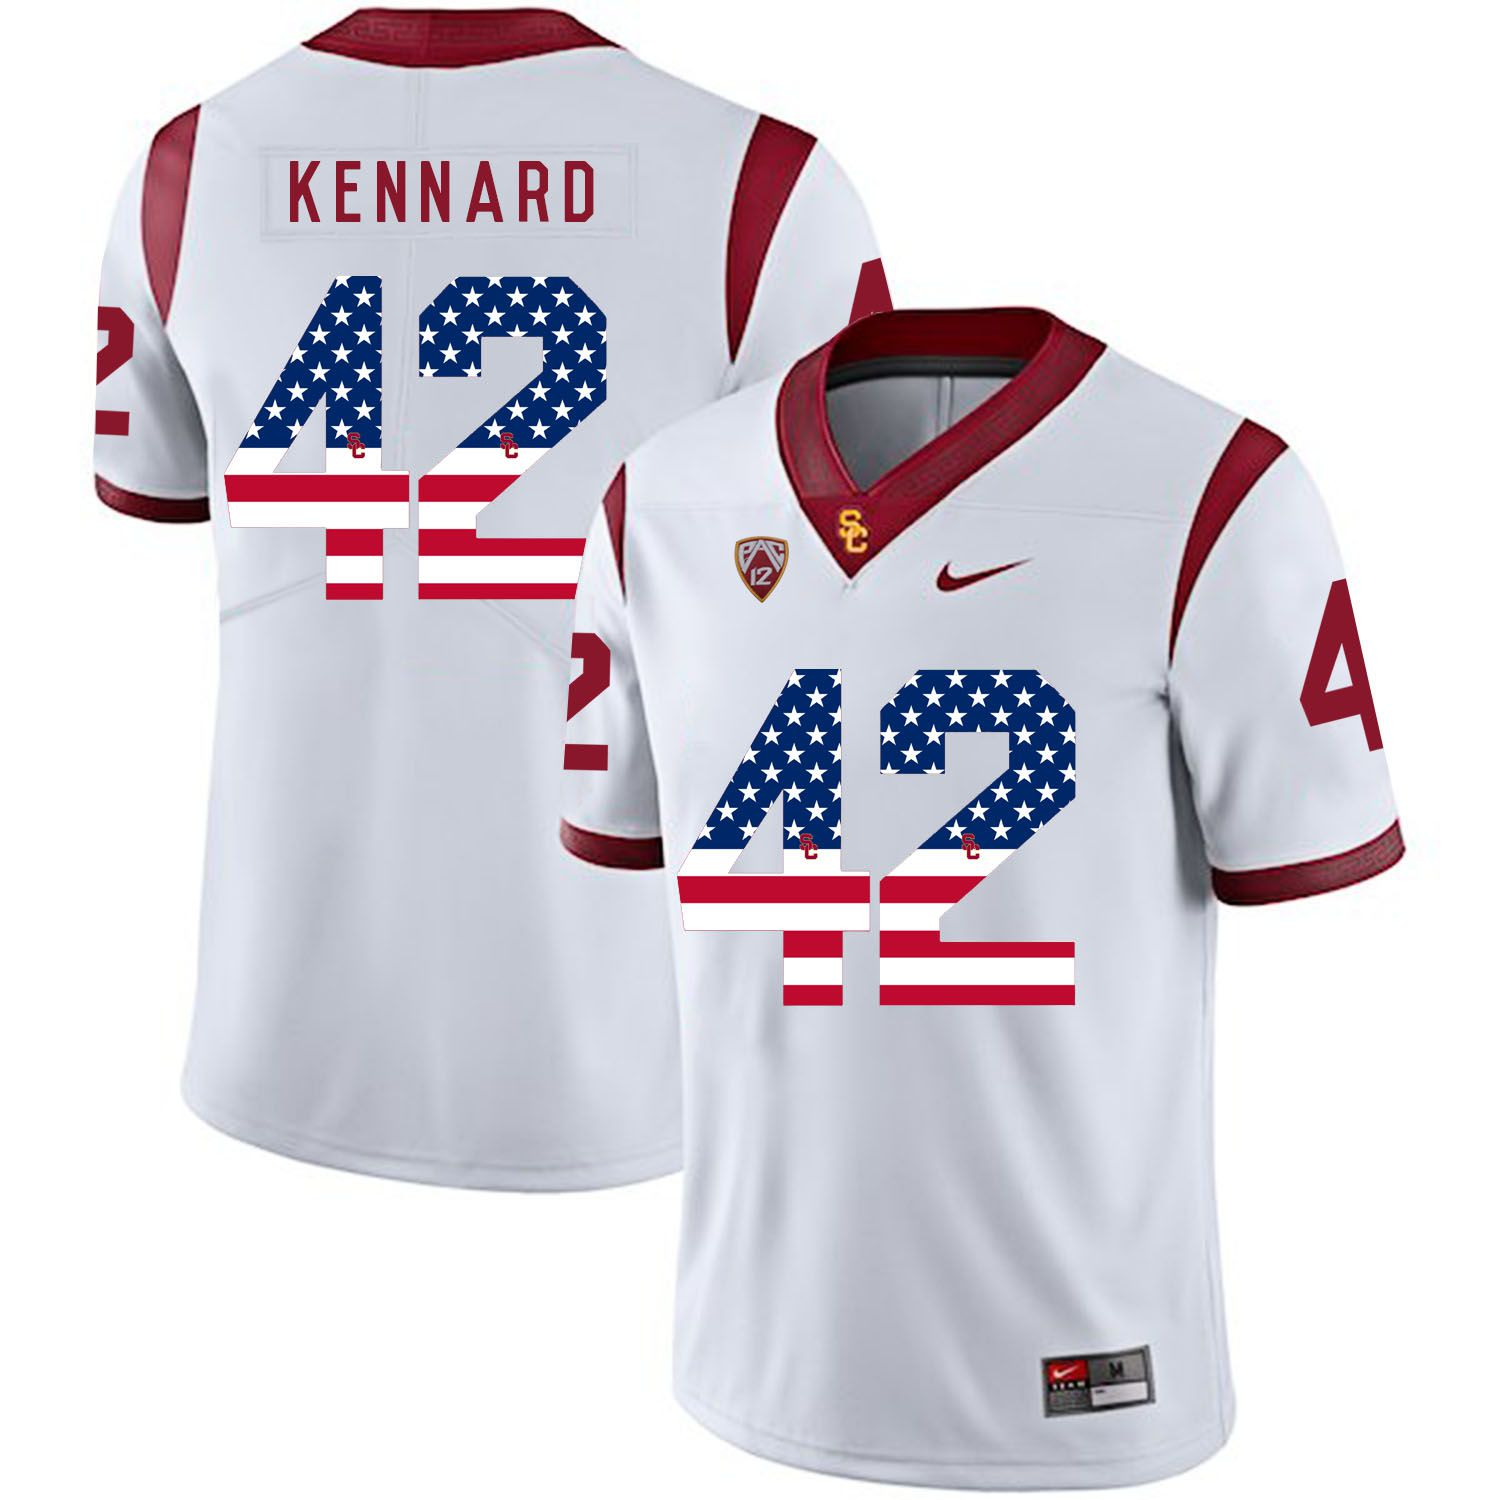 Men USC Trojans 42 Kennard White Flag Customized NCAA Jerseys